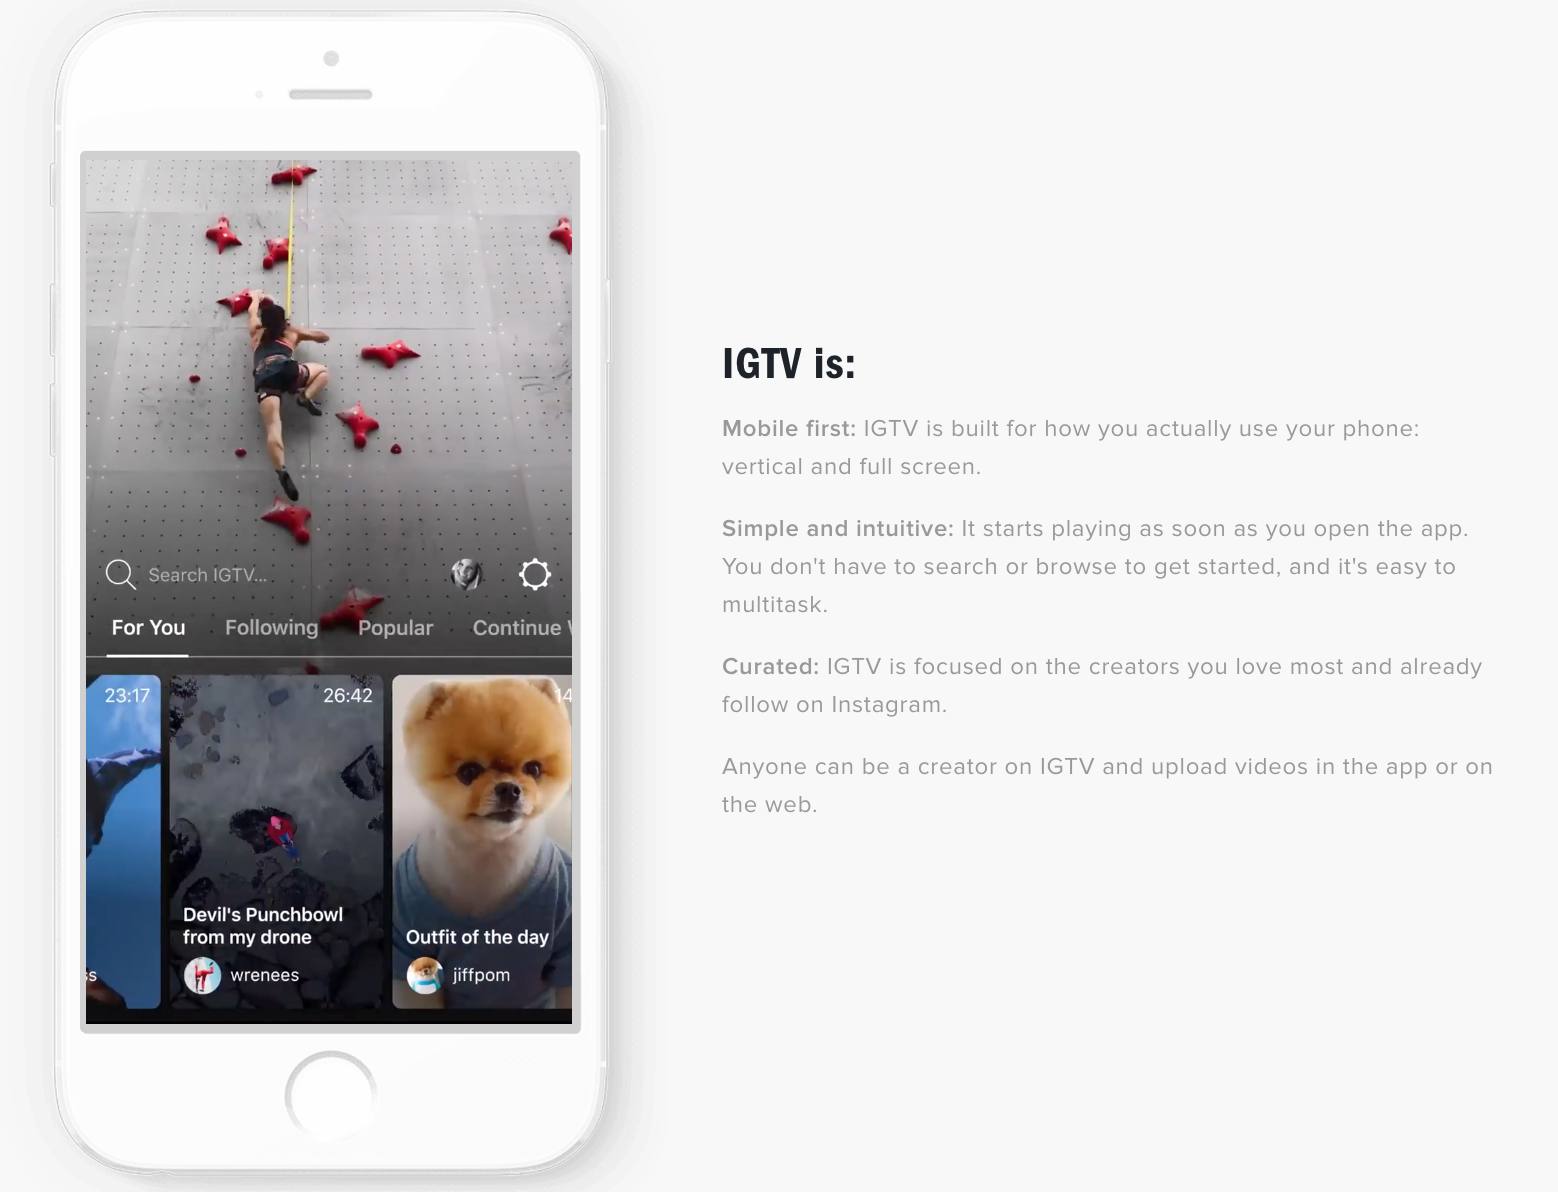 Instagram Launches IGTV Video App Featuring Longer-Form Video